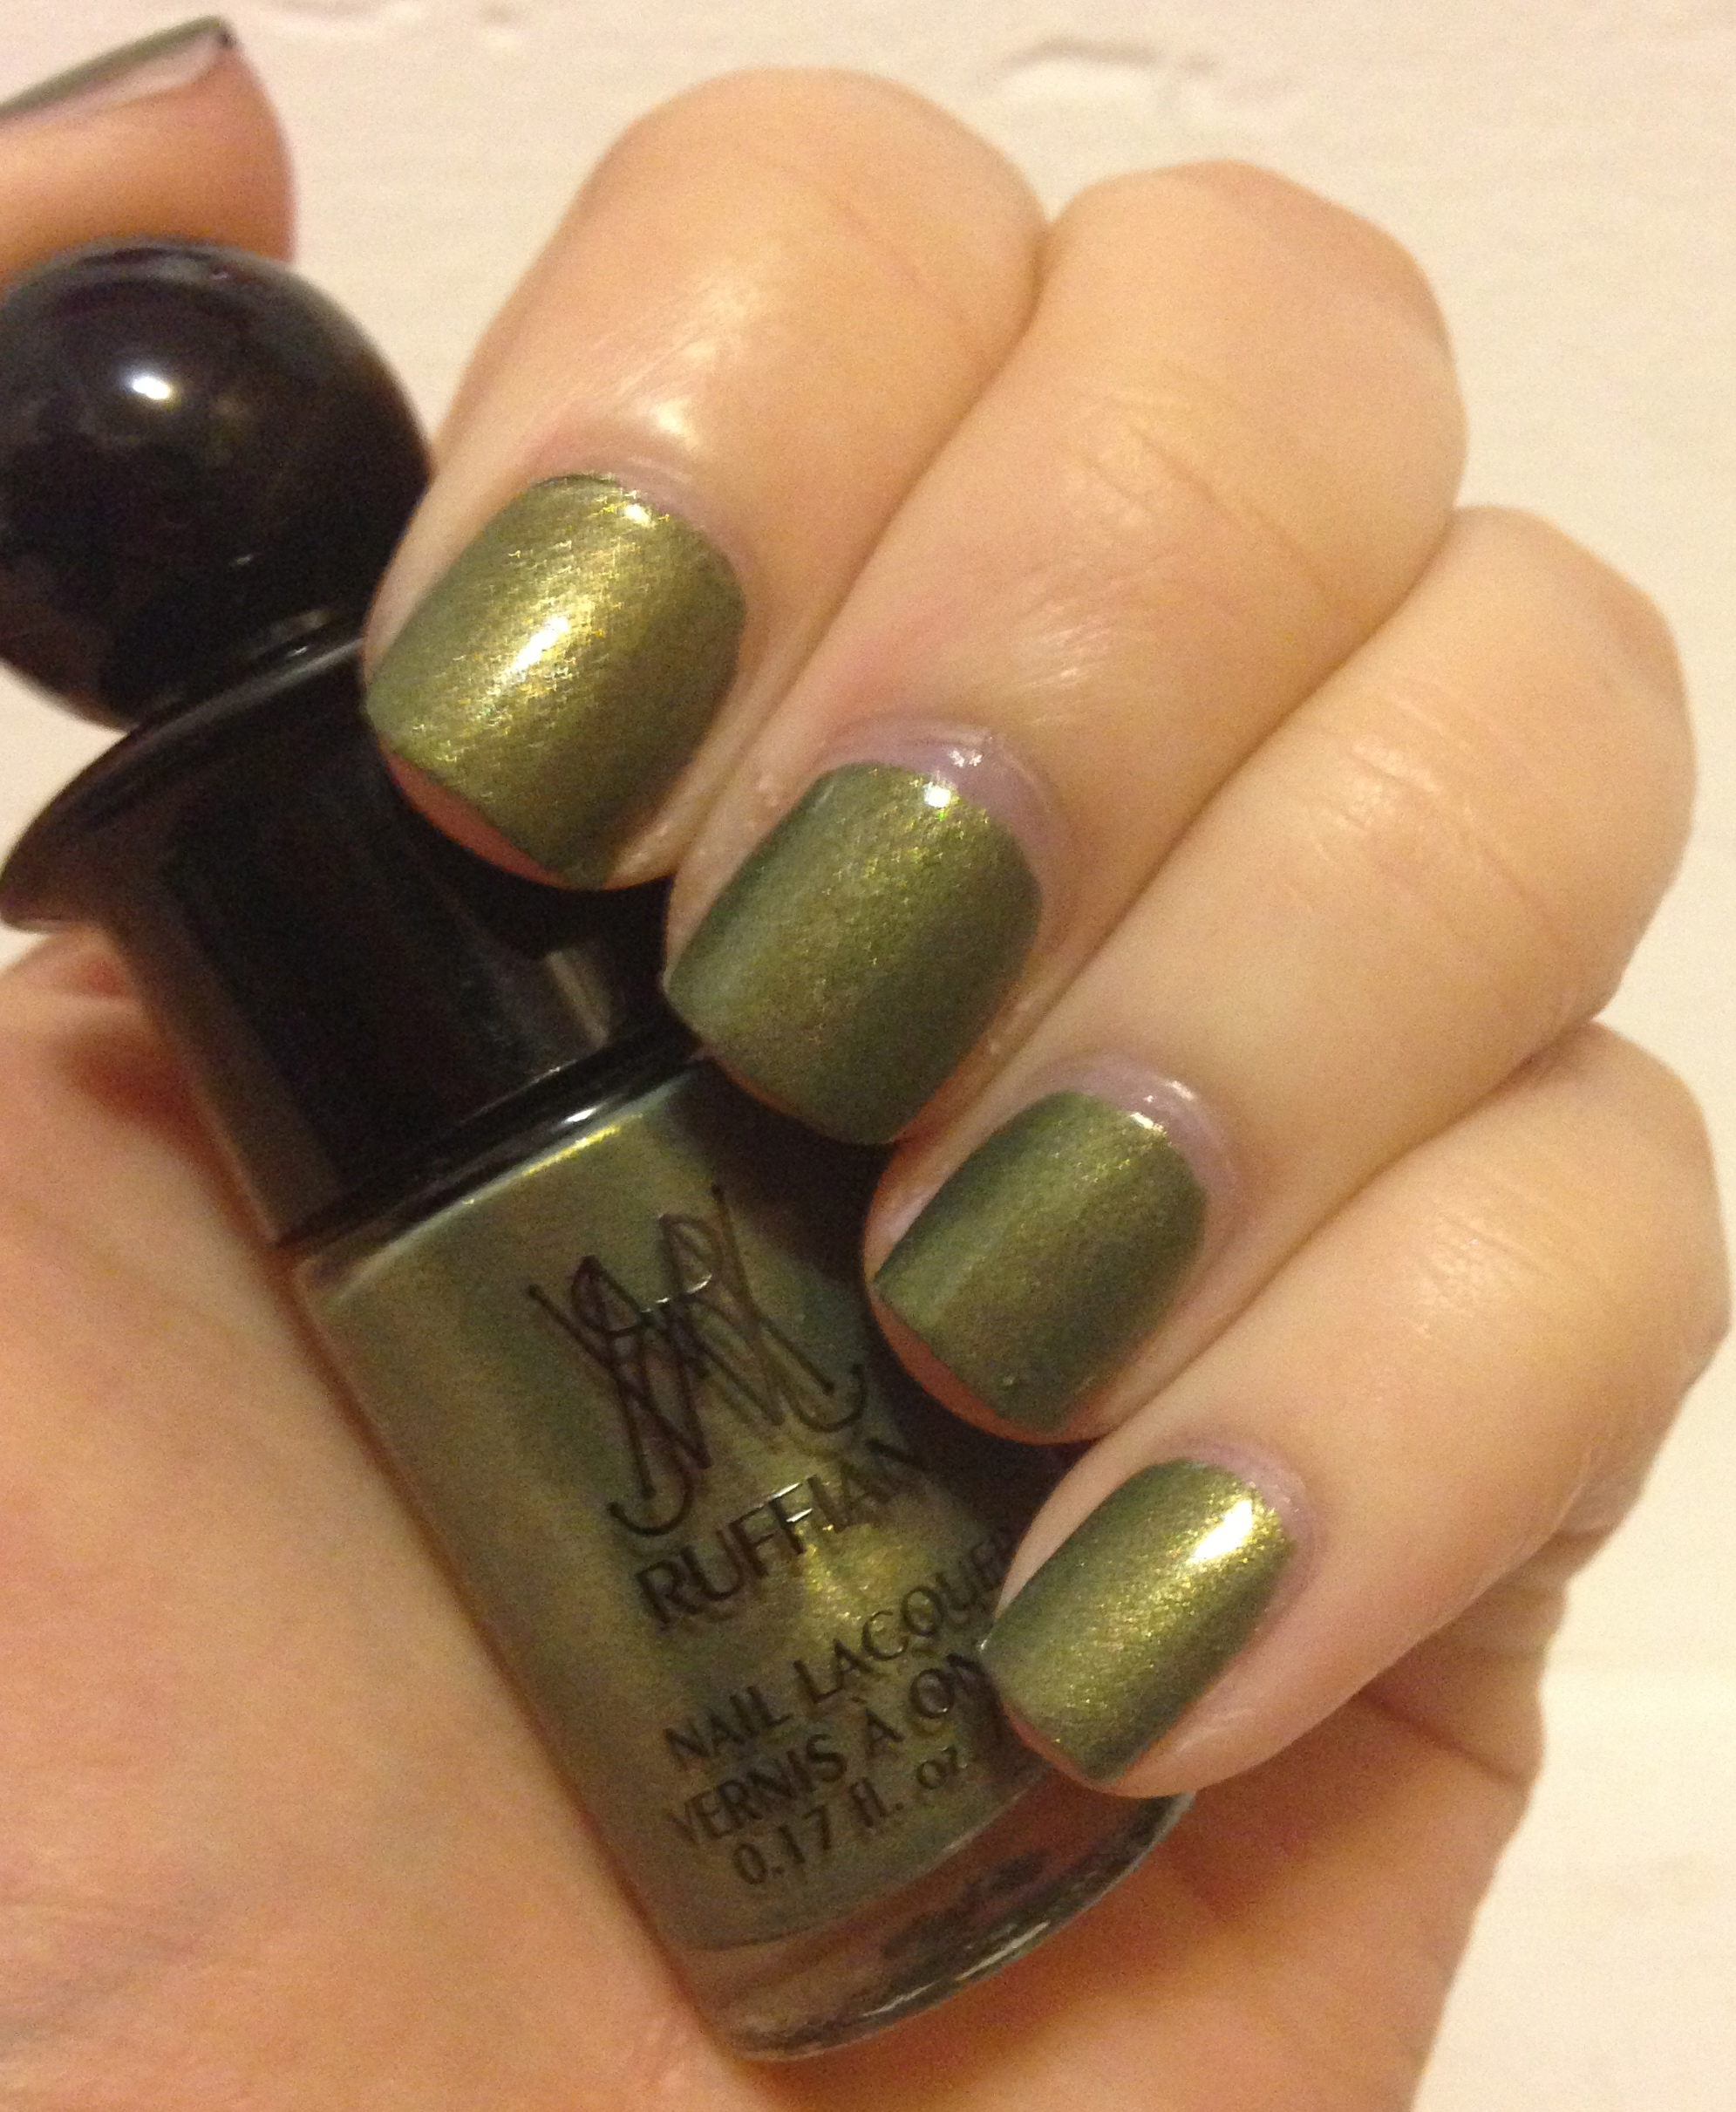 Ruffian nail lacquer in hedge fund from the crowdsourced this green beauty is hedge fund from the crowdsourced collection hedge fund is an army green metallic polish with a gorgeous gold shimmer prinsesfo Images